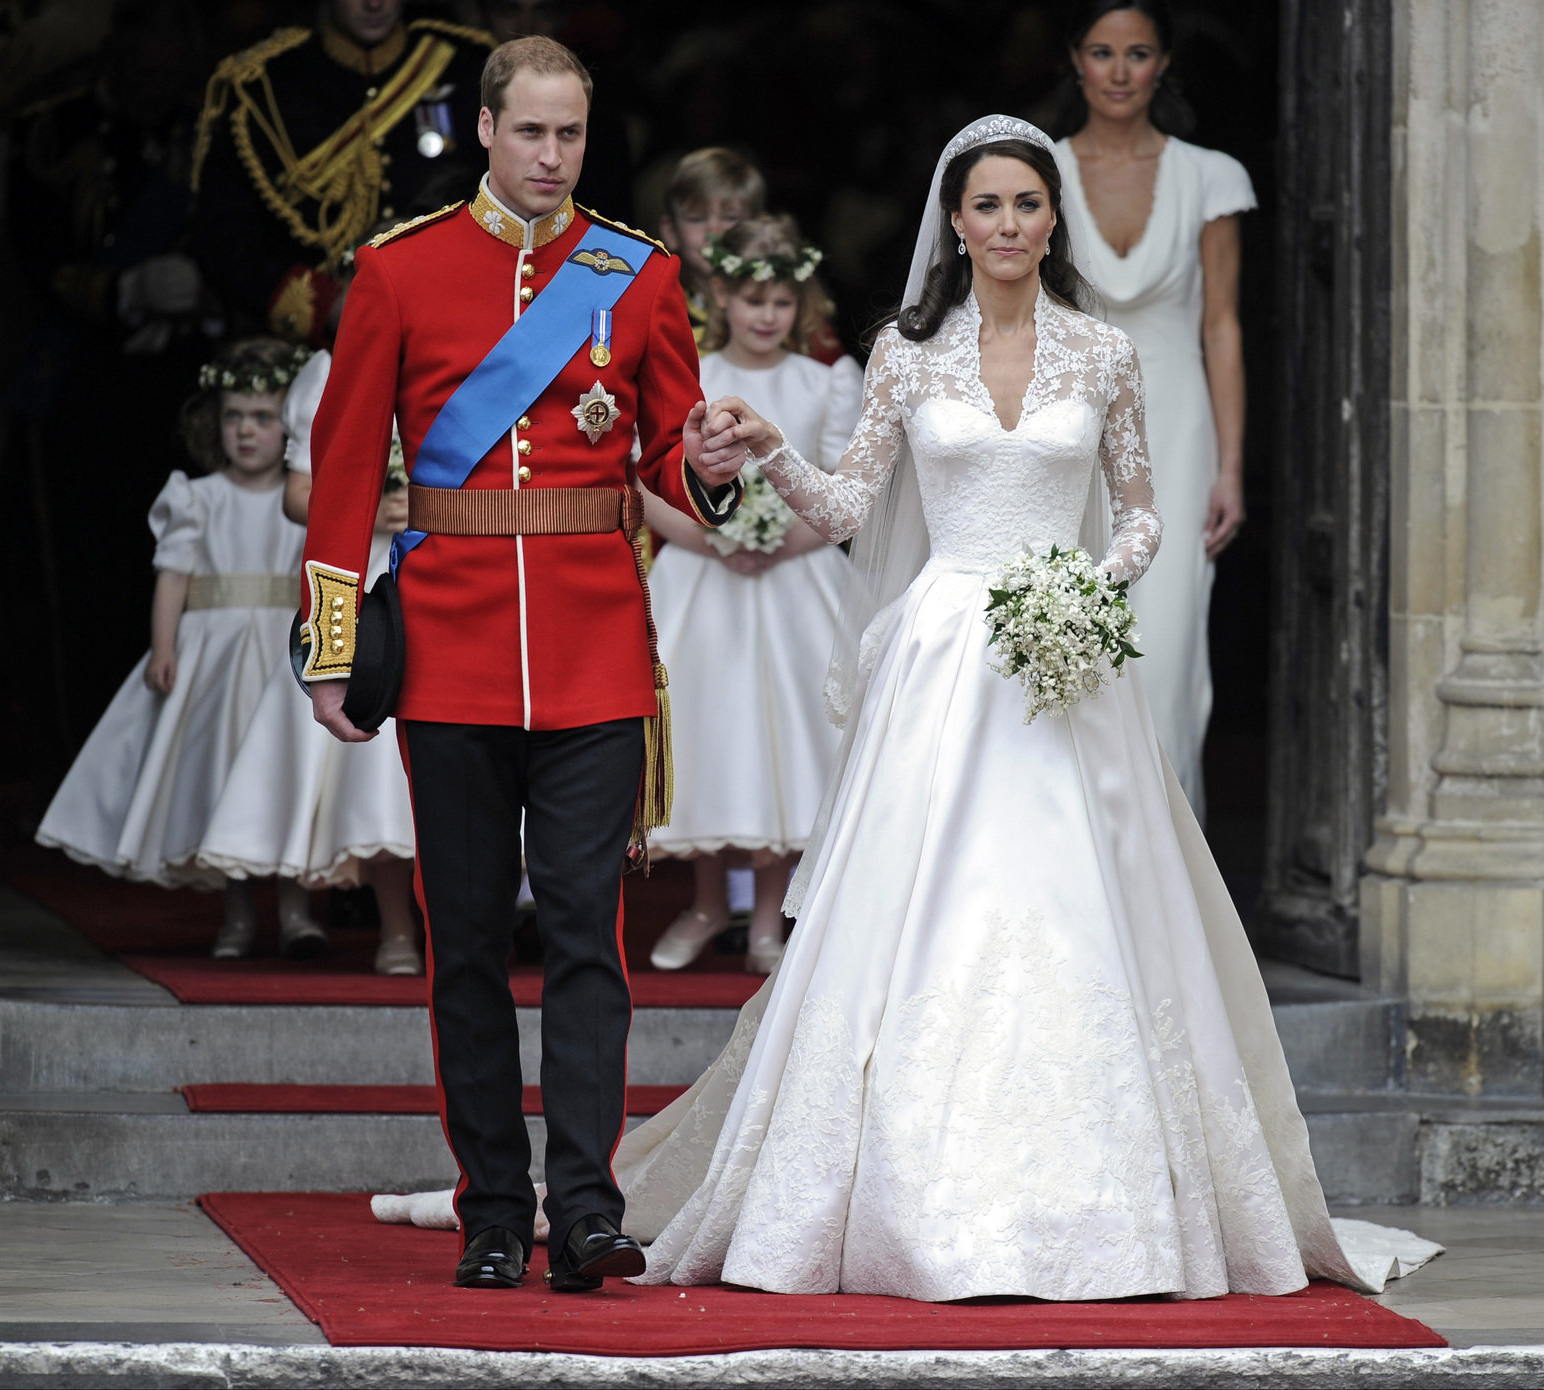 Dressybridal whose royal wedding dress is your favorite for Princess catherine wedding dress